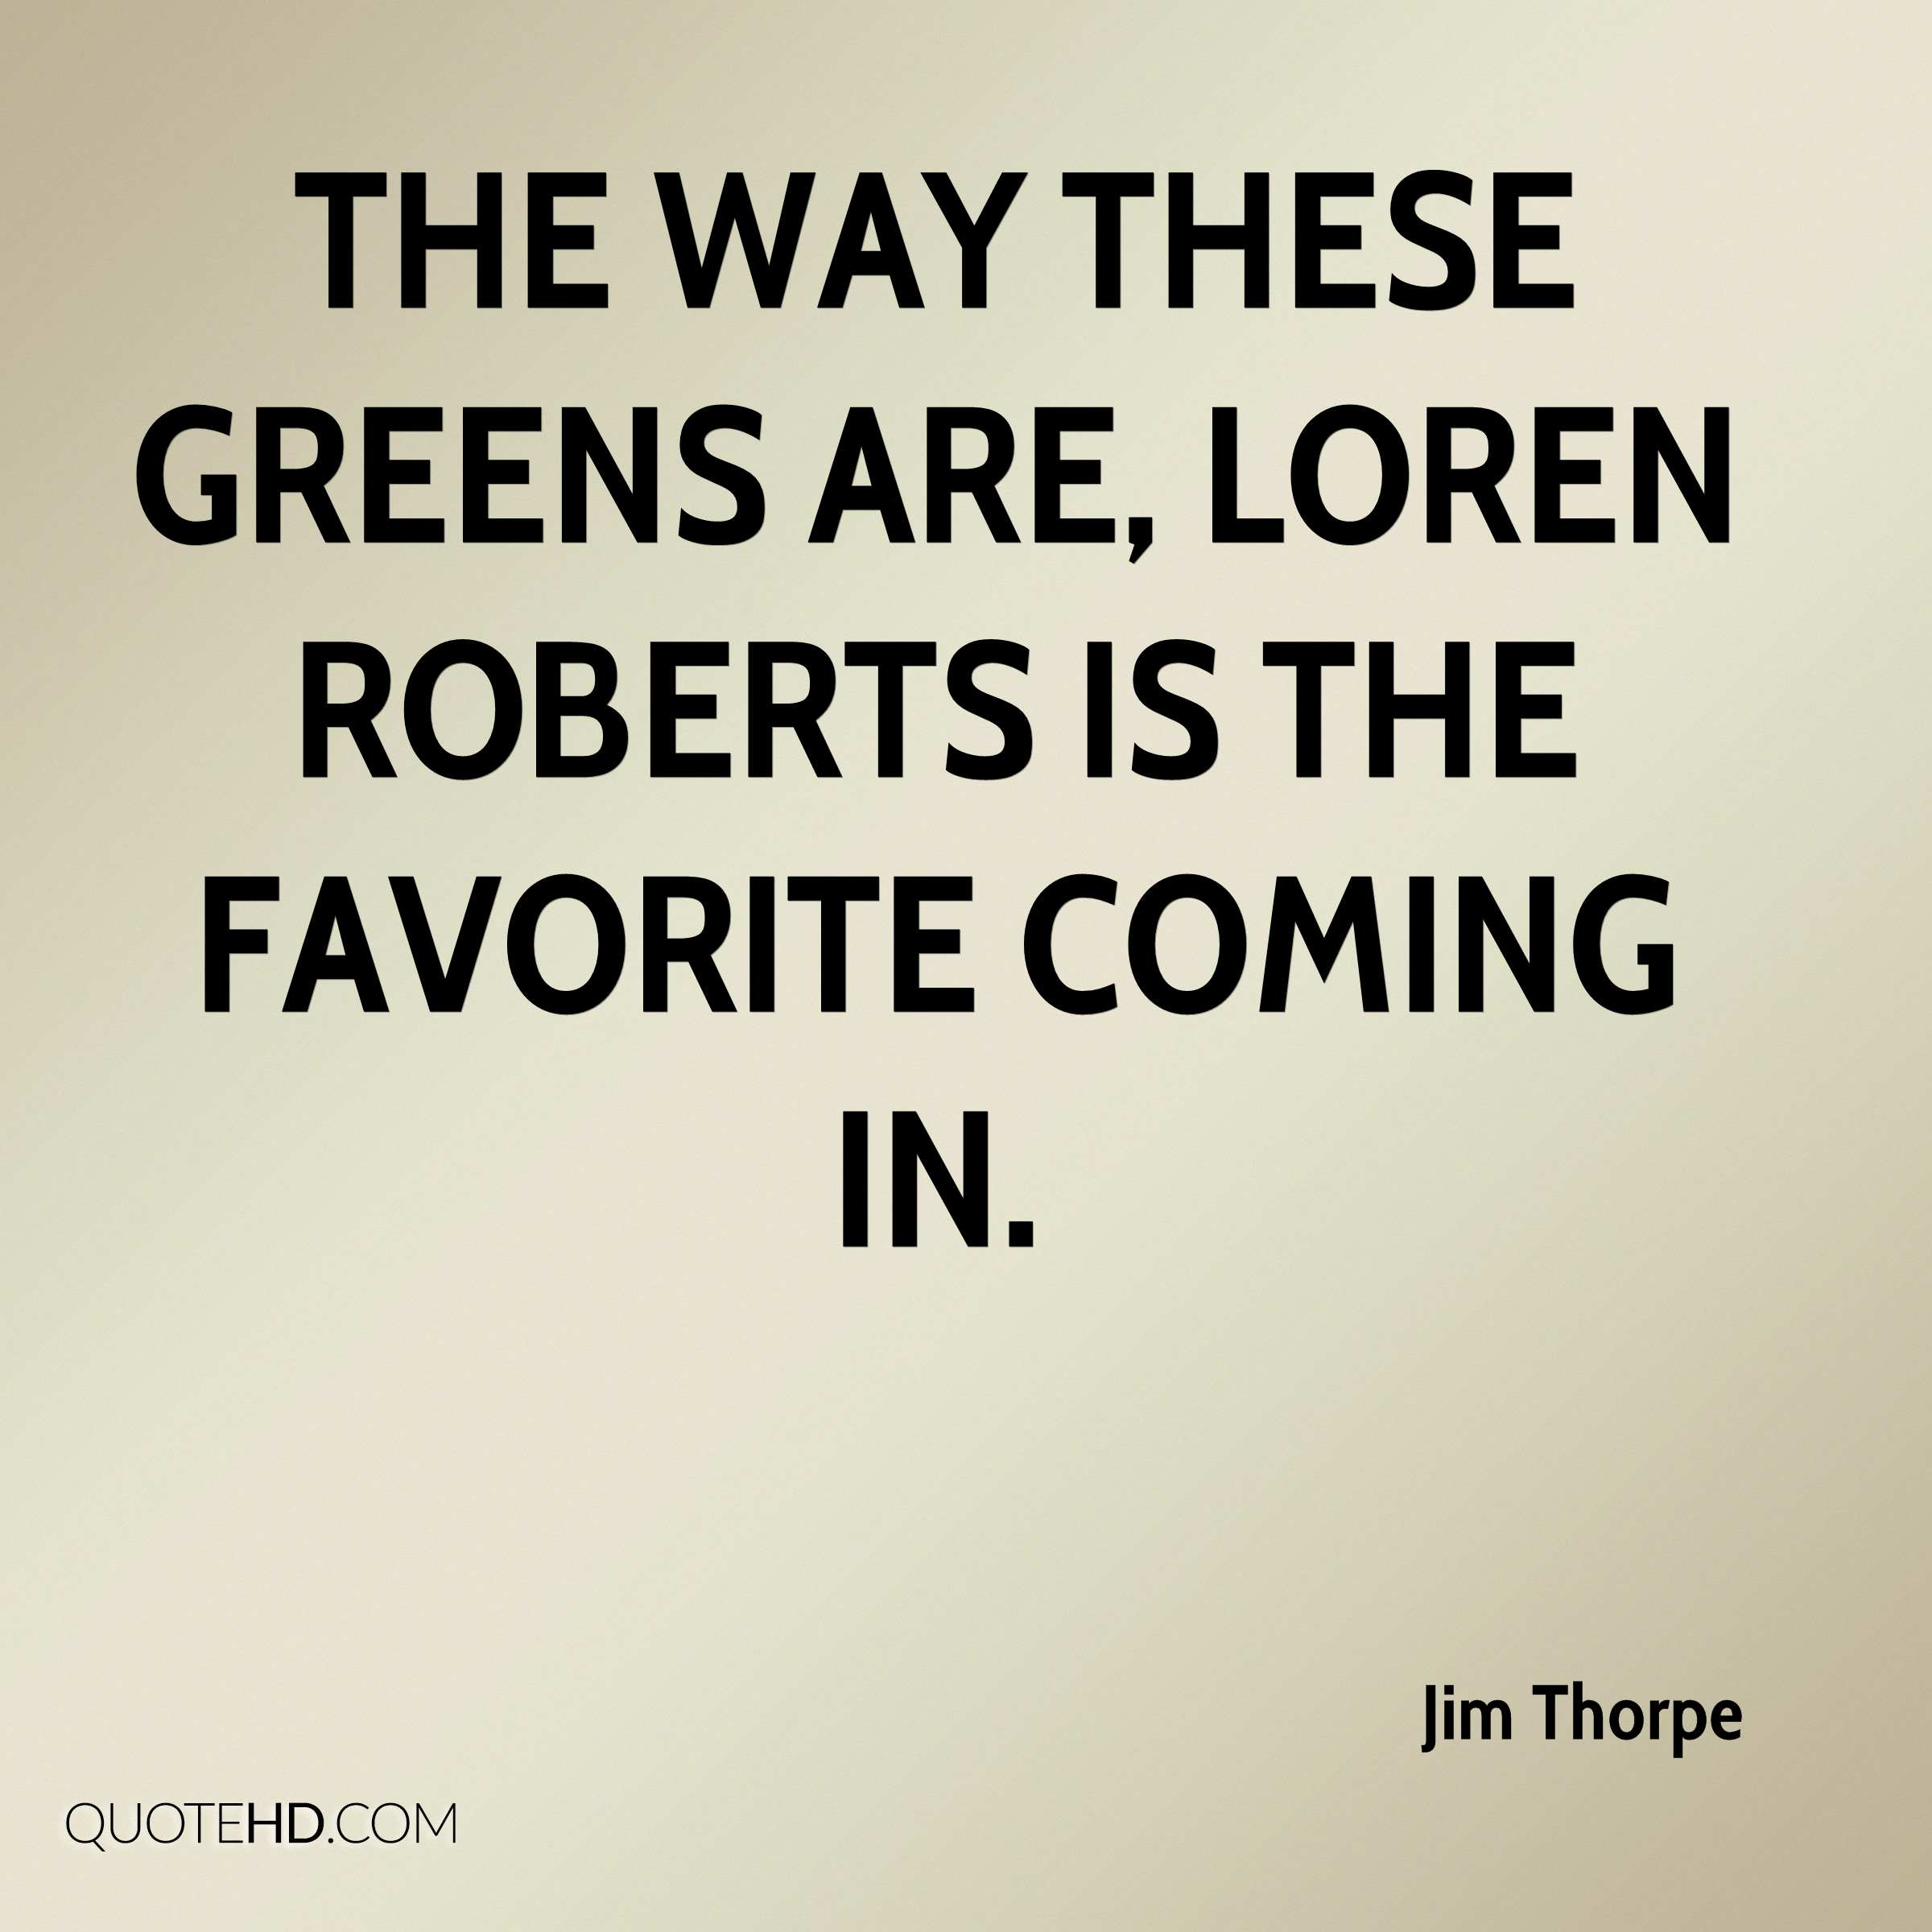 The way these greens are, Loren Roberts is the favorite coming in.